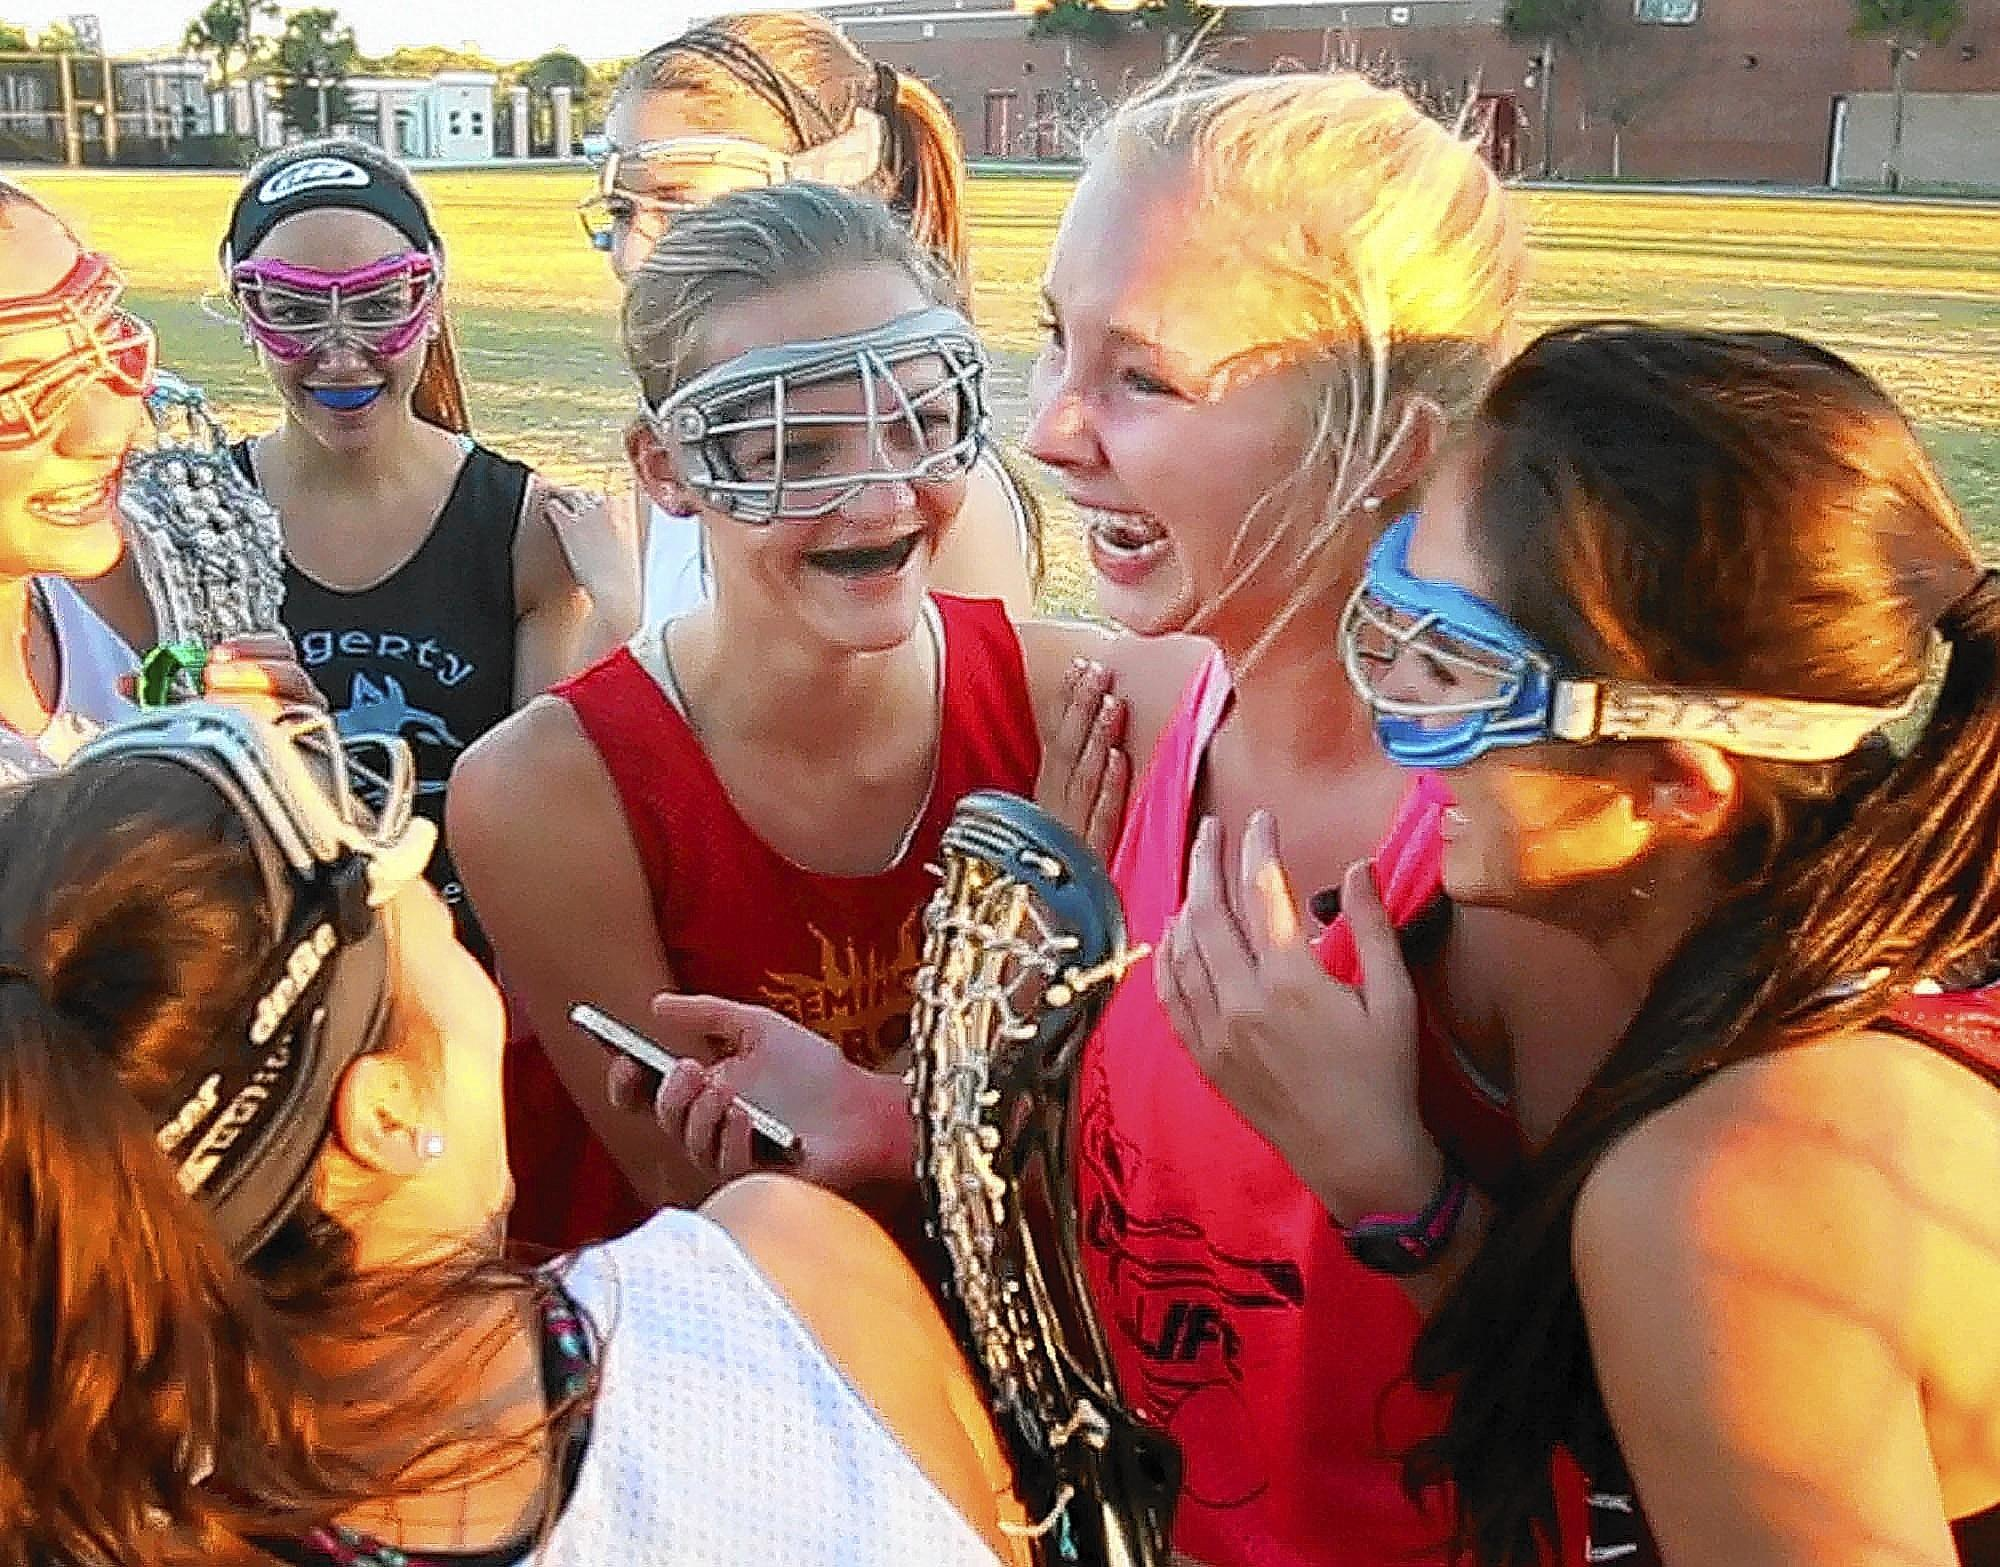 Hagerty High lacrosse player Lizzie Connor reacts with her teammates after finding out (via email on her phone) that she's been accepted at the University of Florida on Friday, February 14, 2014.